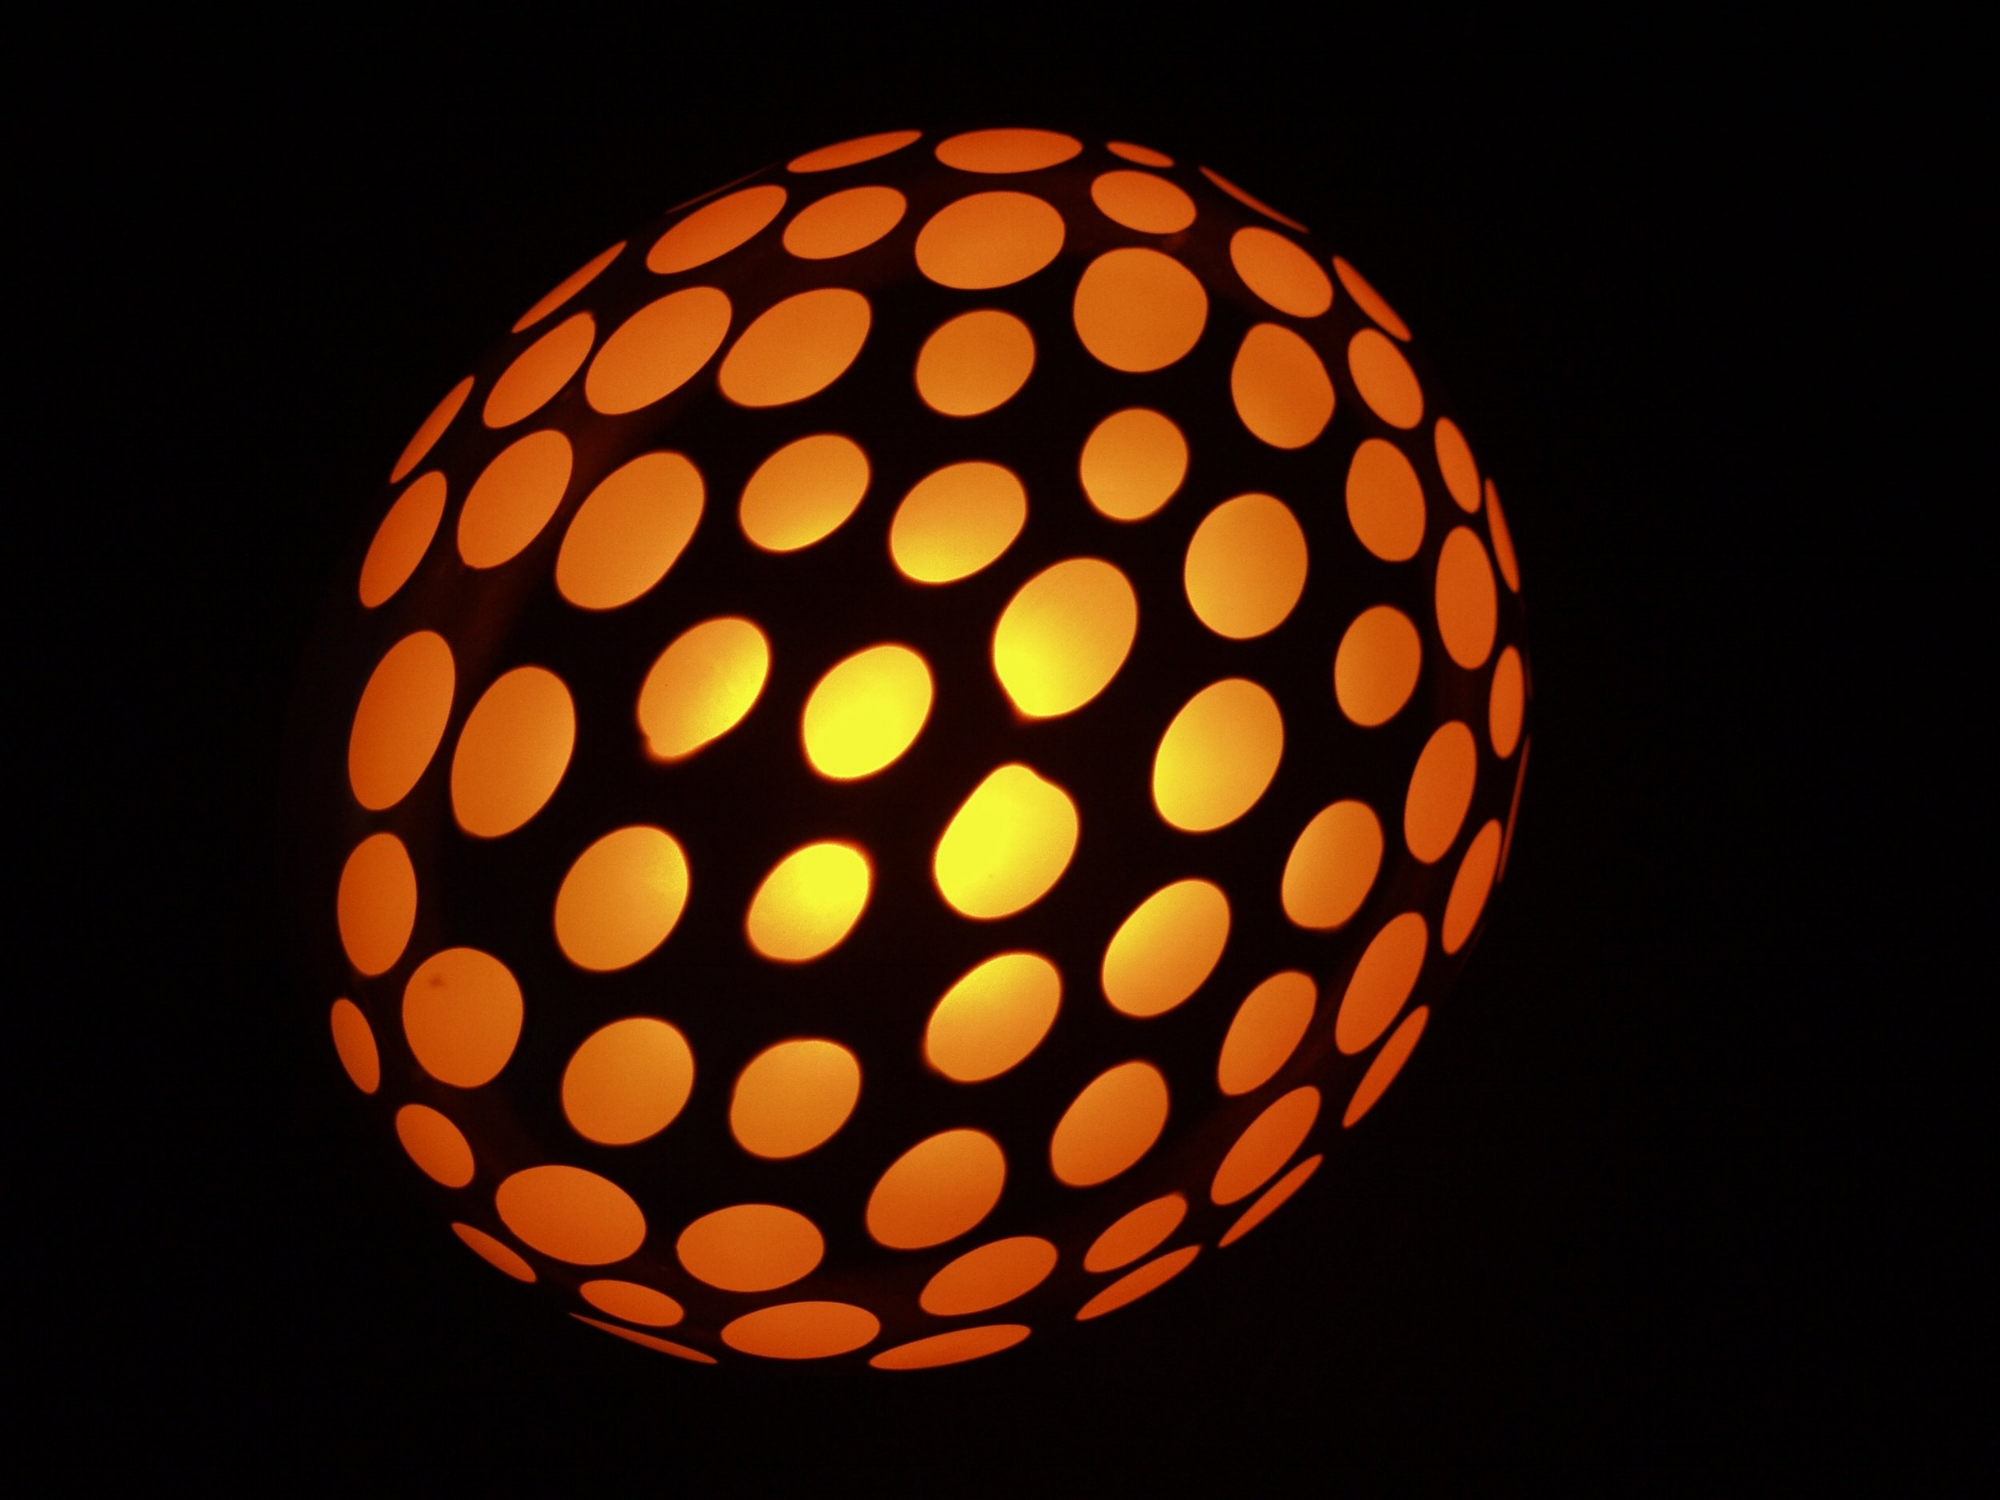 Lit by Xenon low voltage bulbs, the tentacle ends are ground in a batutto technique, resembling a hammered texture and exposing the melon color underneath.